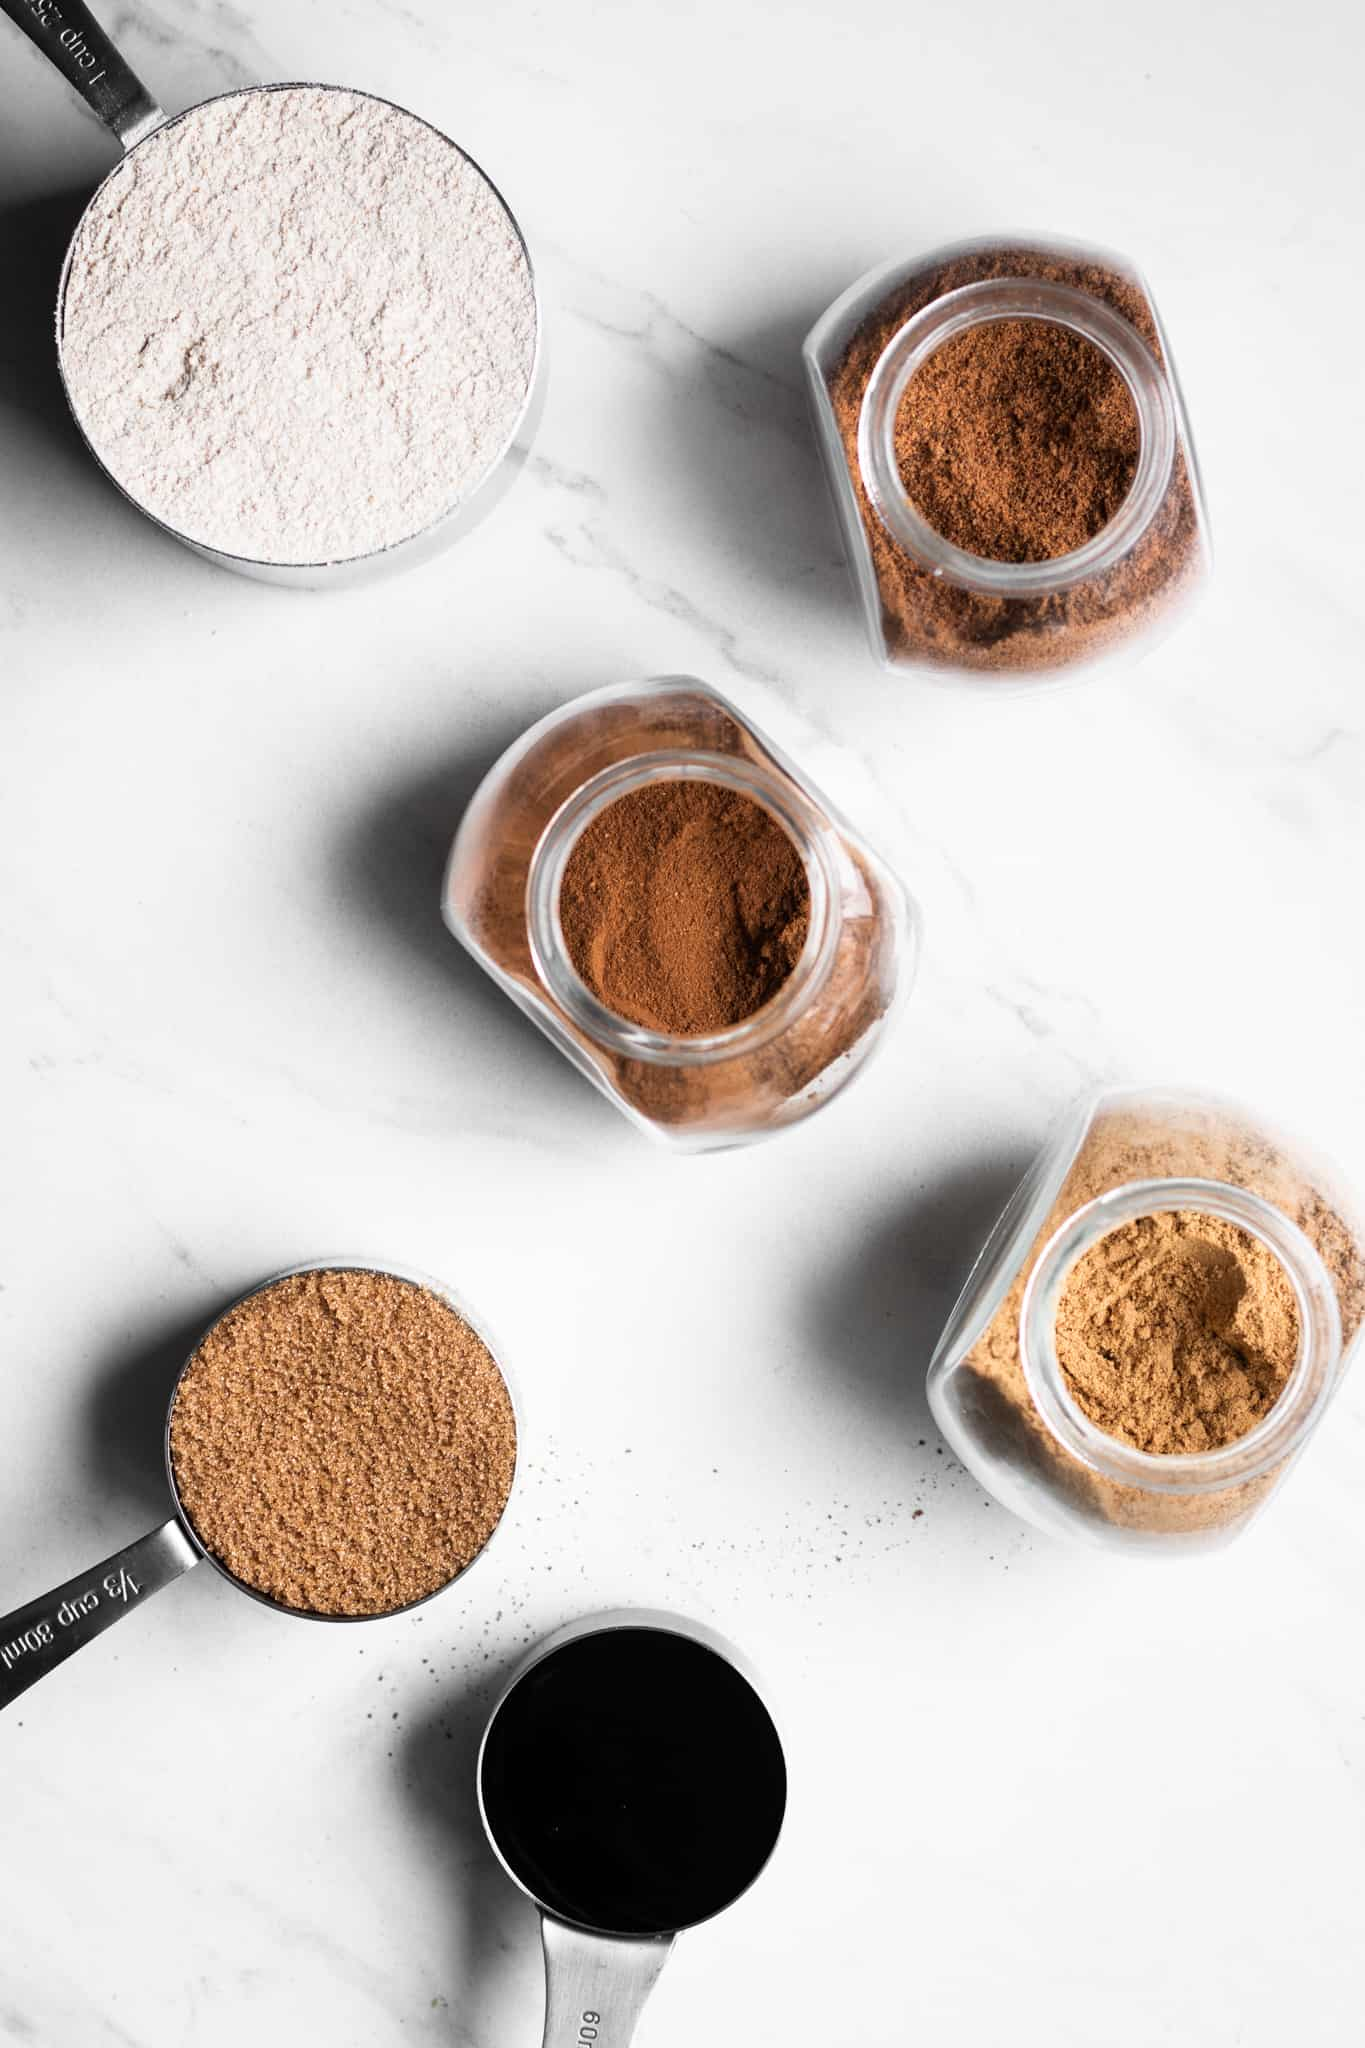 spices, flour, sugar and molasses in measuring cups and jars